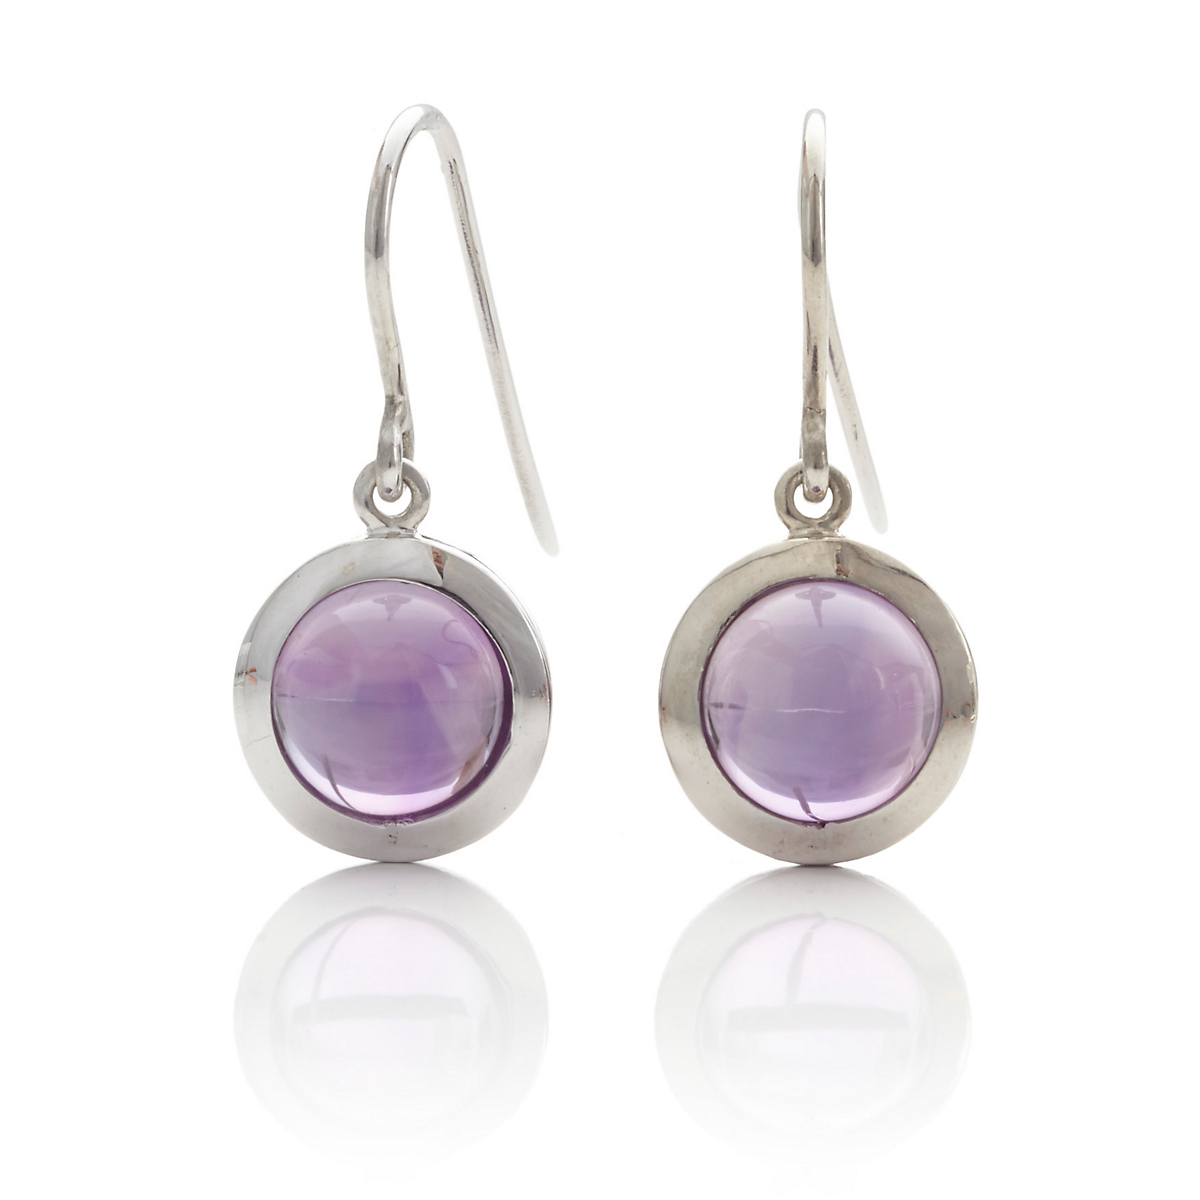 Gump's Amethyst Round Drop Earrings